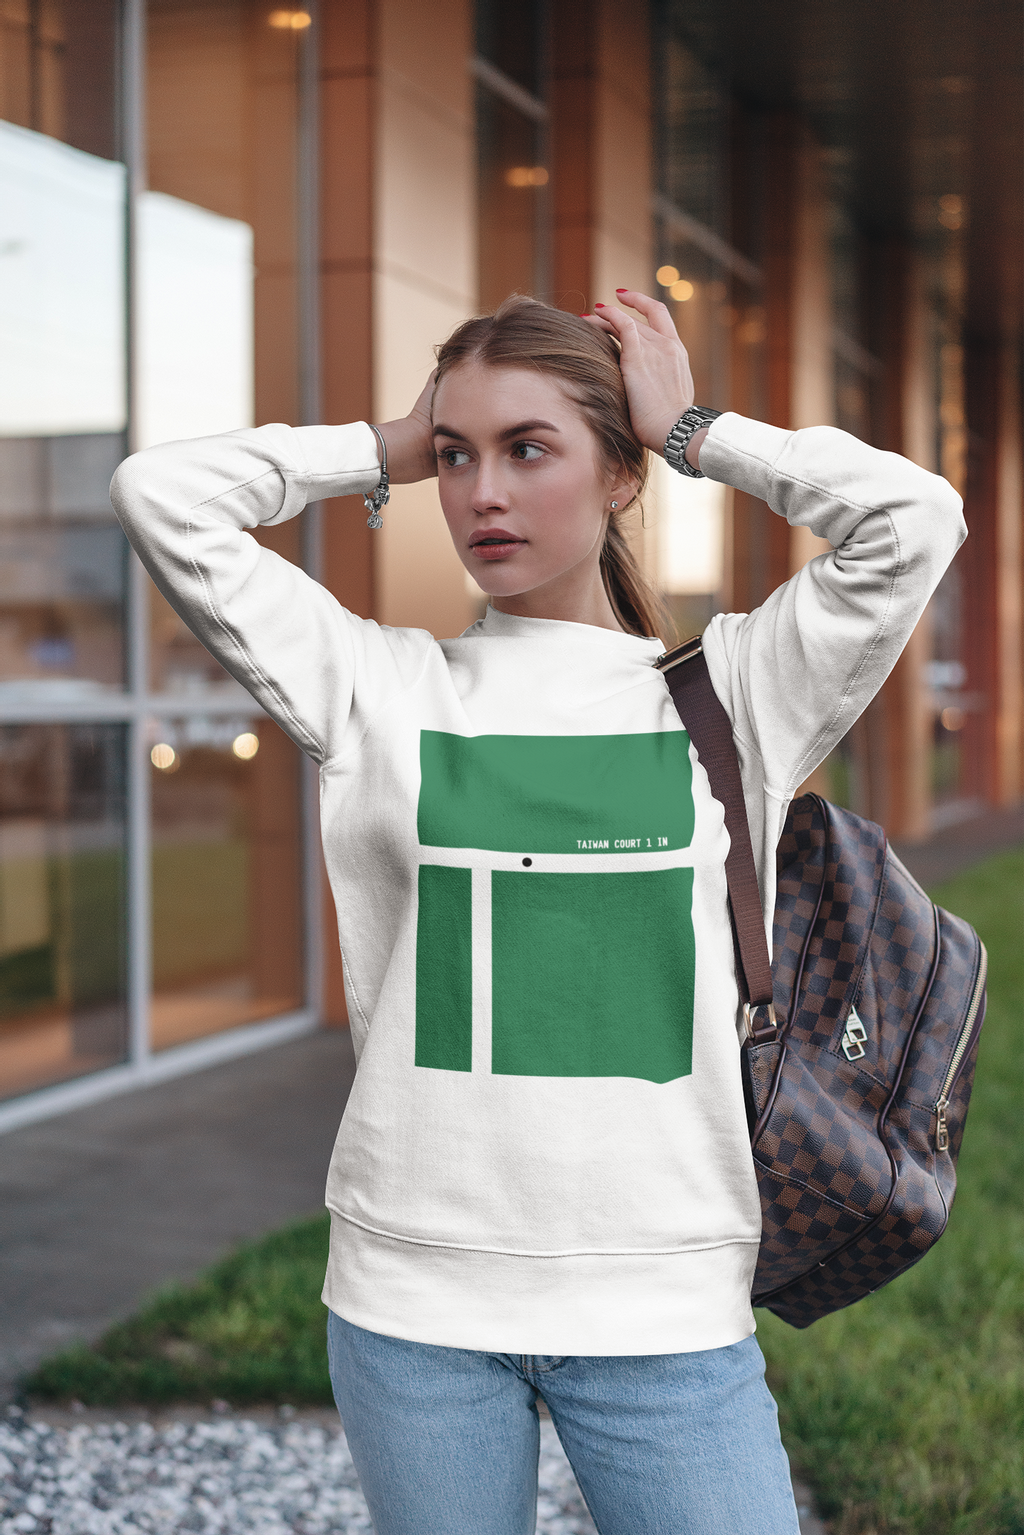 sweatshirt-mockup-of-a-woman-with-her-hands-on-her-head-2842-el1.png